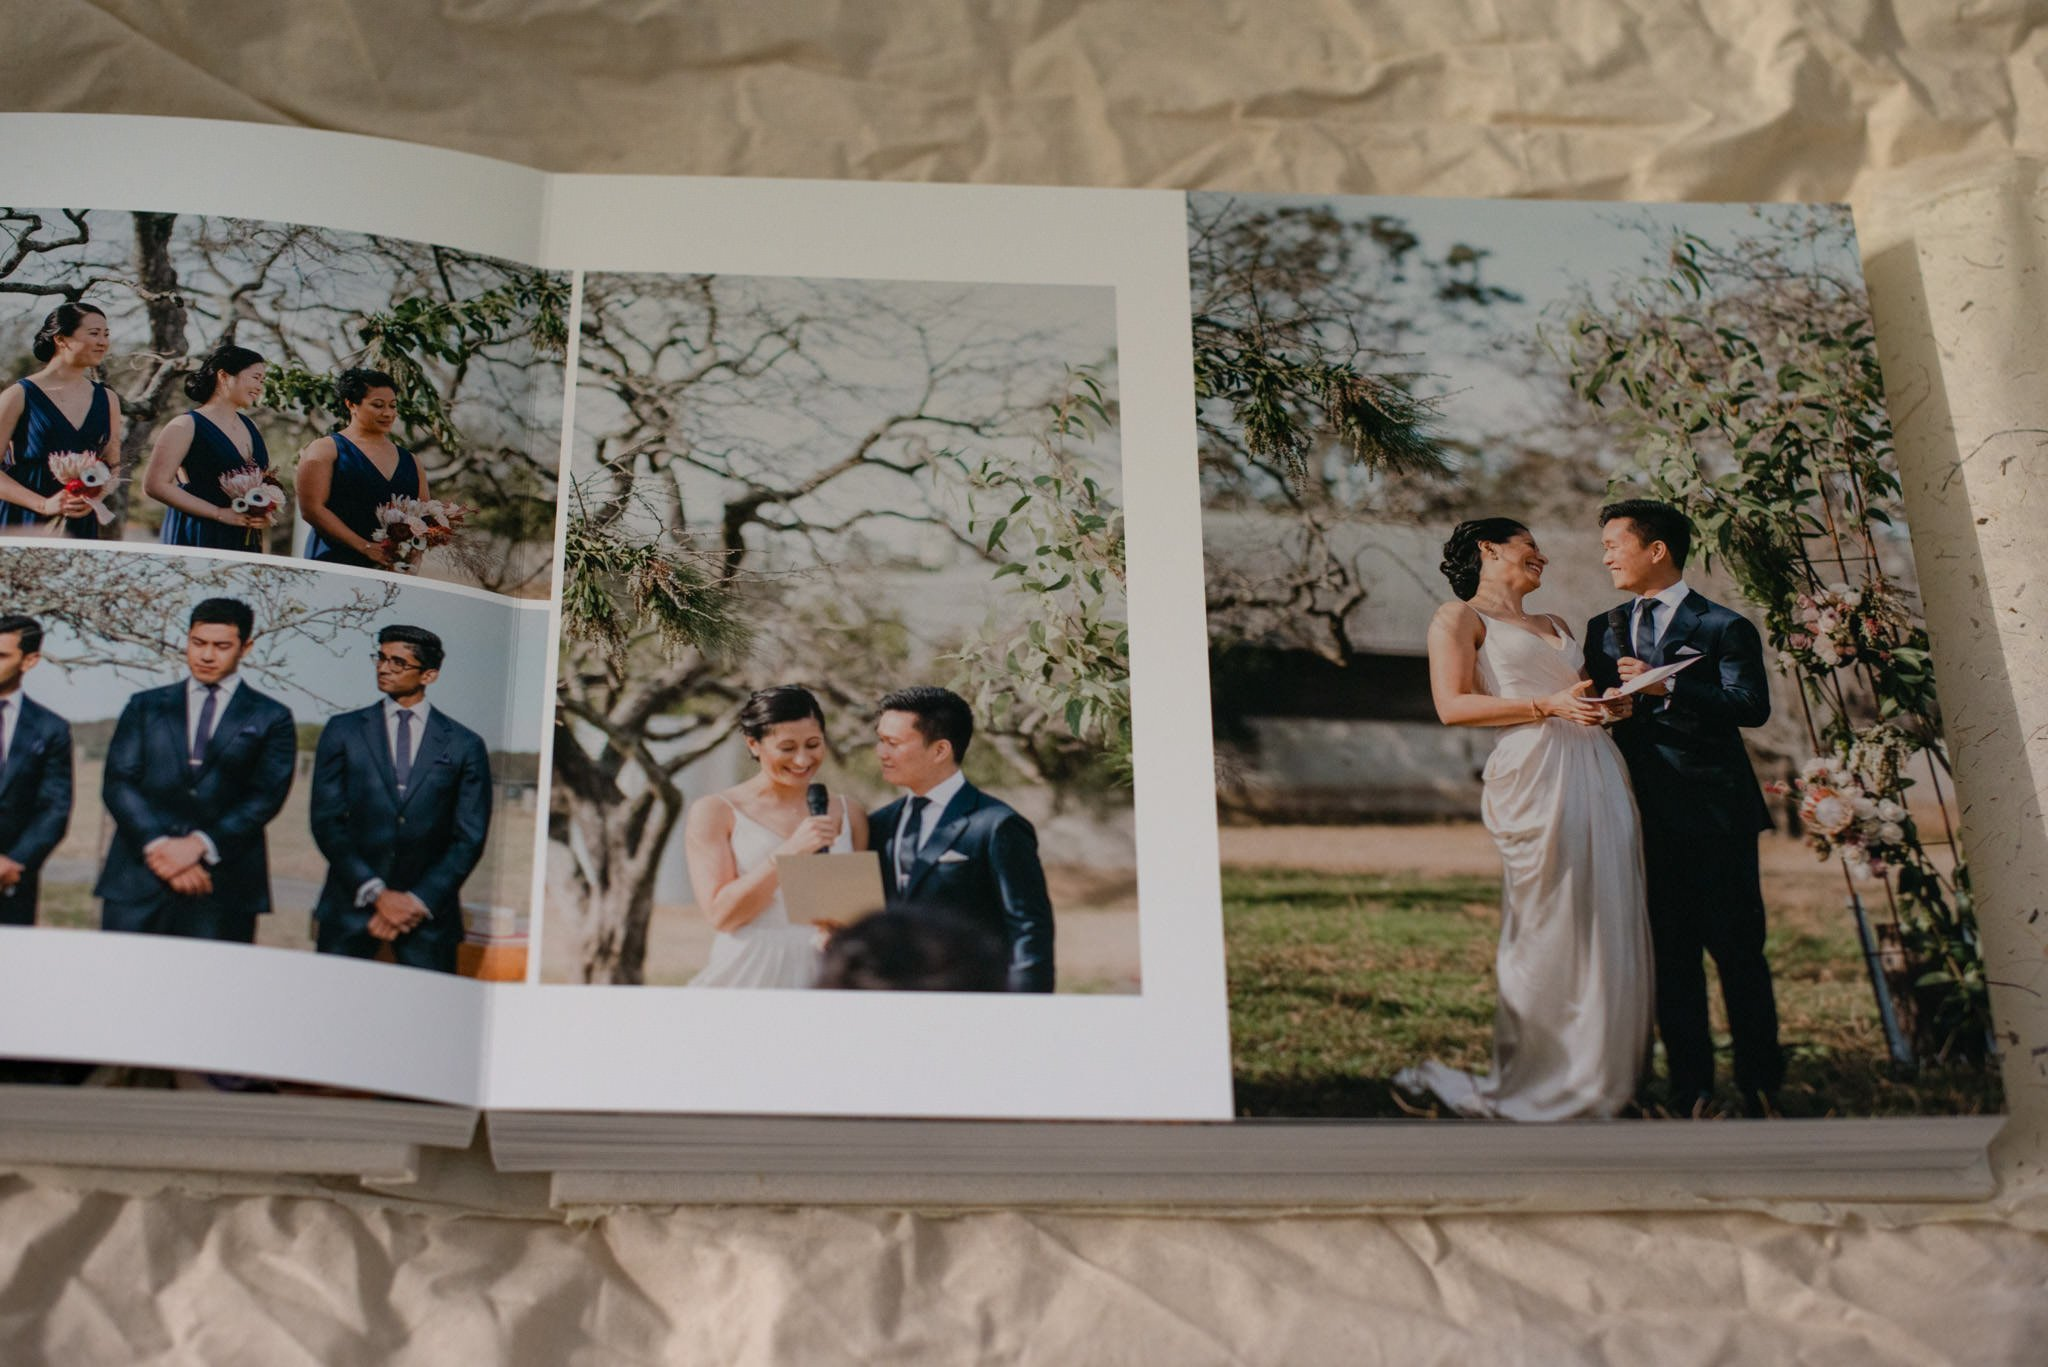 Wedding Photo Albums & Books - Layflat Photo Albums, Leather Covered Albums, Linen Covered Albums, Silk Covered Albums